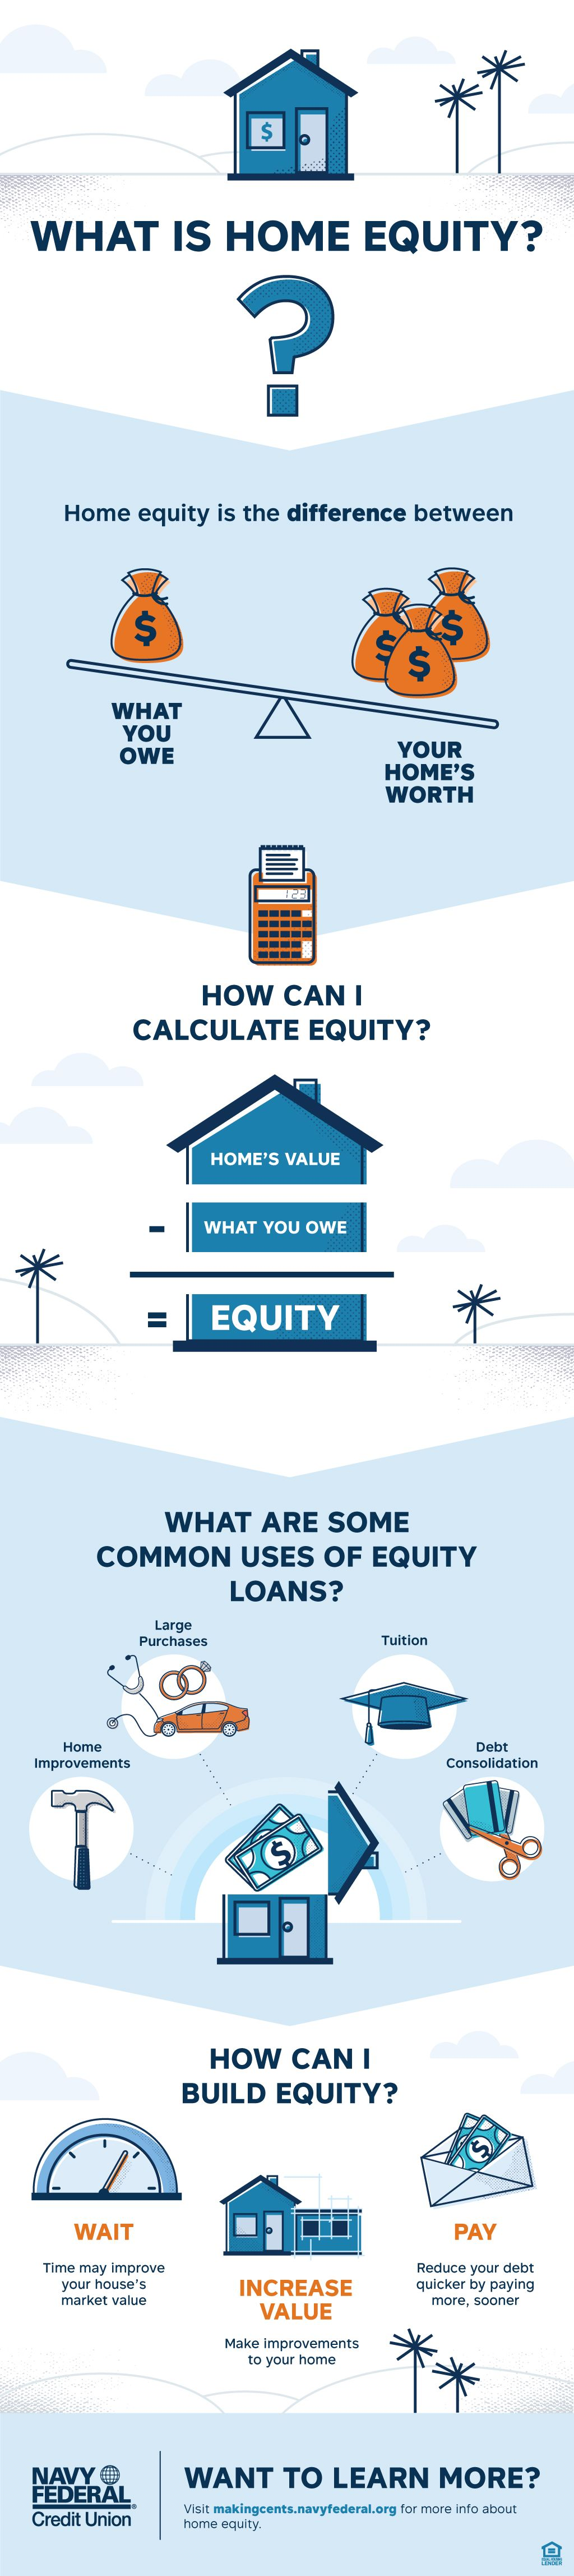 What Exactly Is Equity Home Equity Home Equity Loan Navy Federal Credit Union